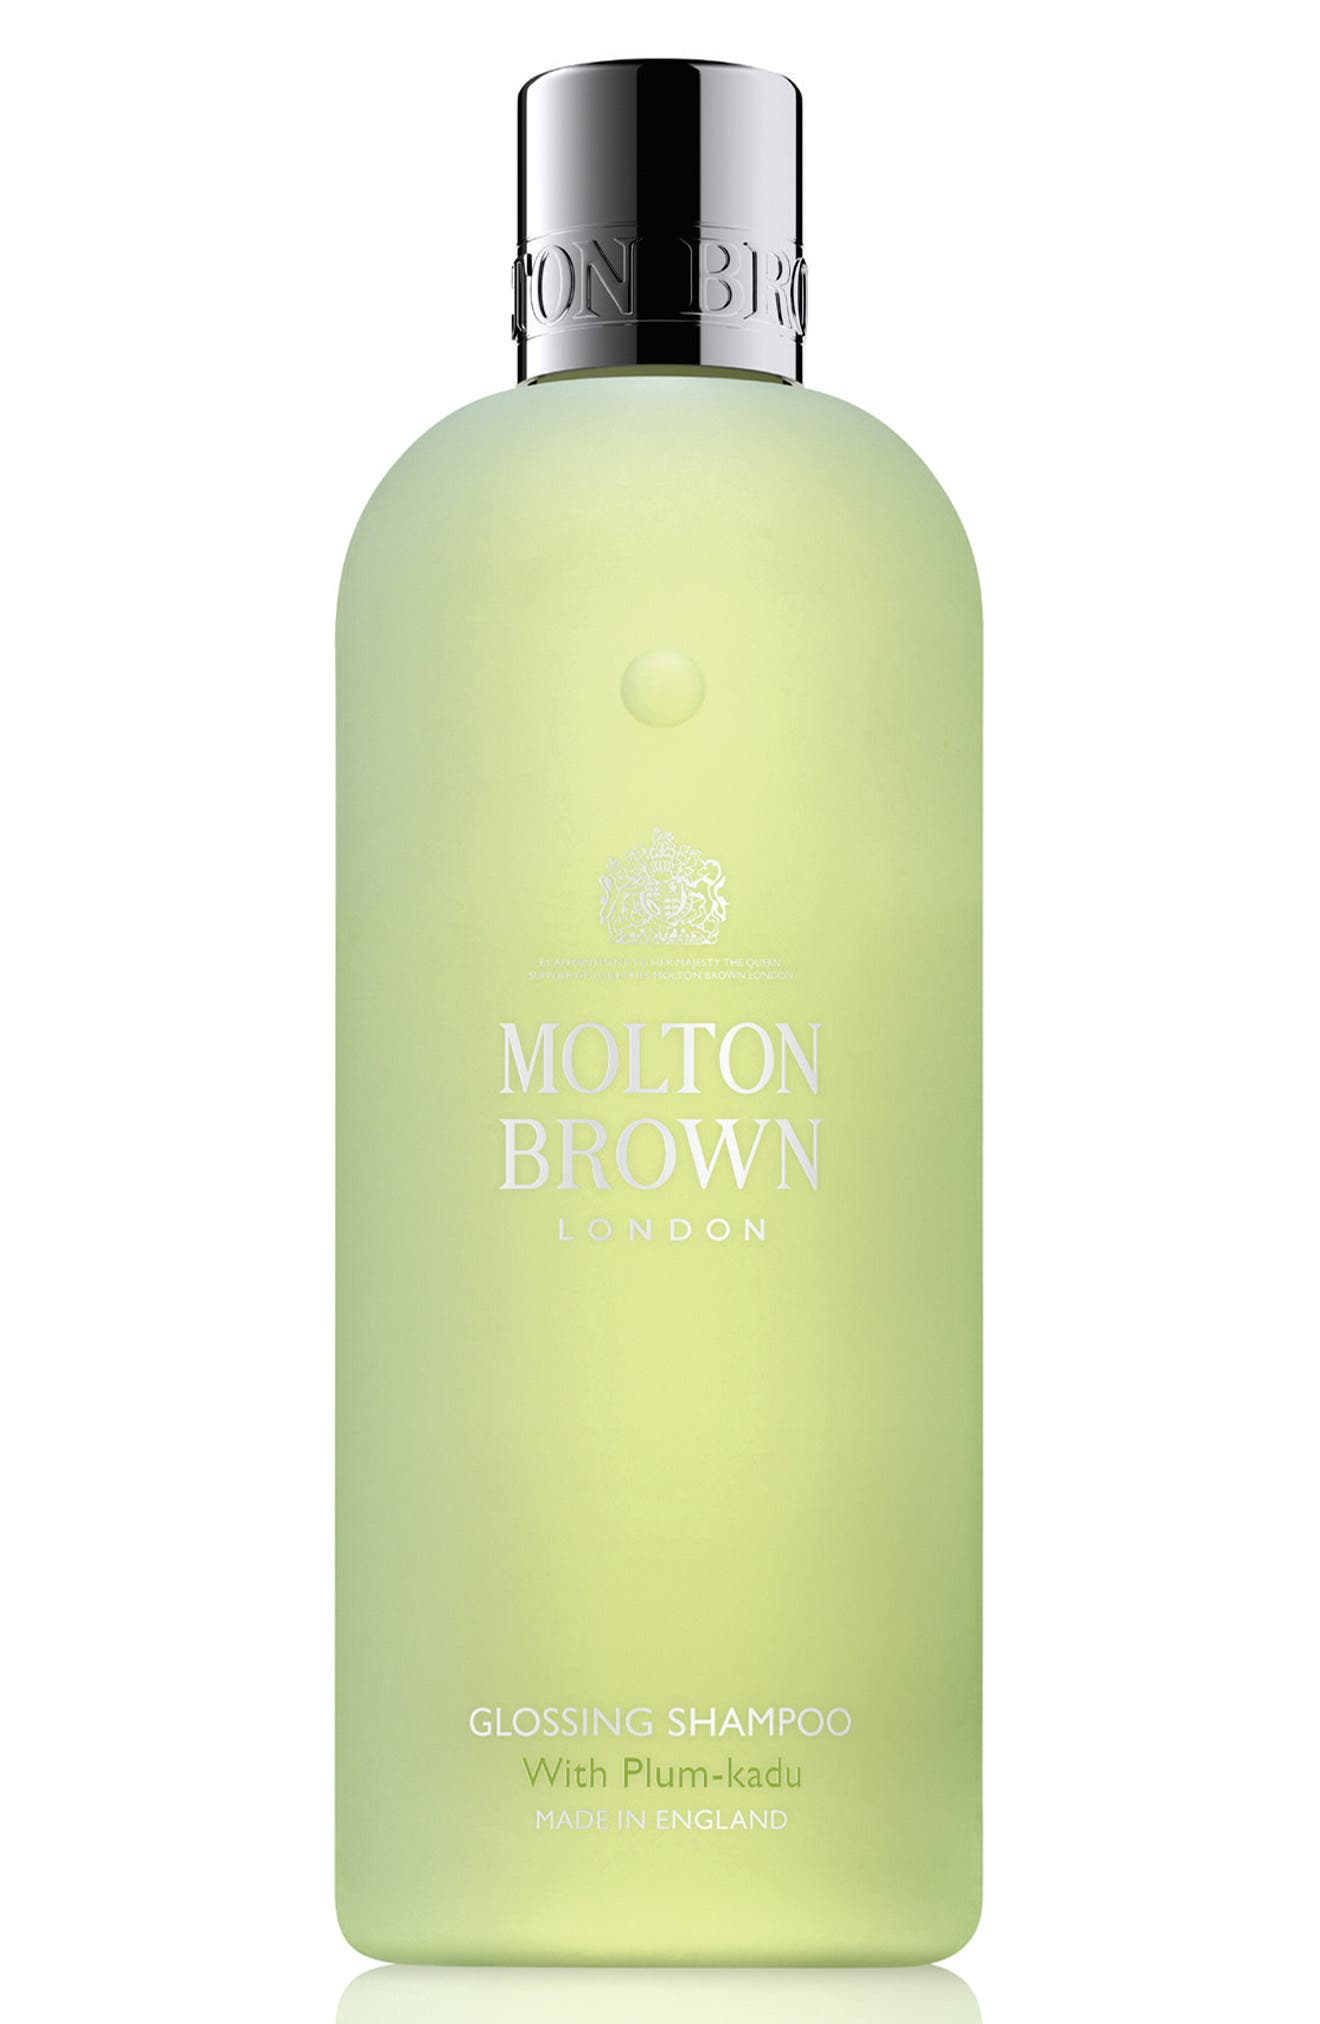 Alternate Image 1 Selected - MOLTON BROWN London Glossing Shampoo with Plum Kadu